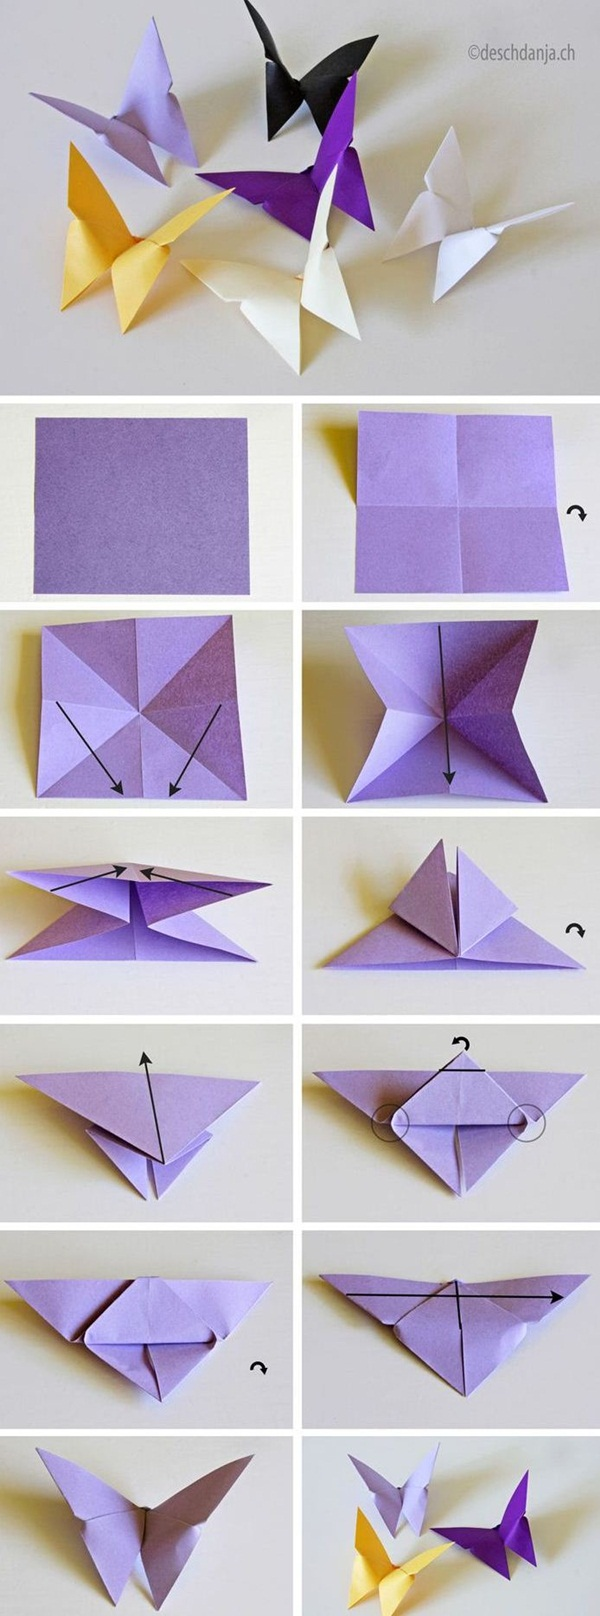 DIY Paper Crafts Ideas for Kids24